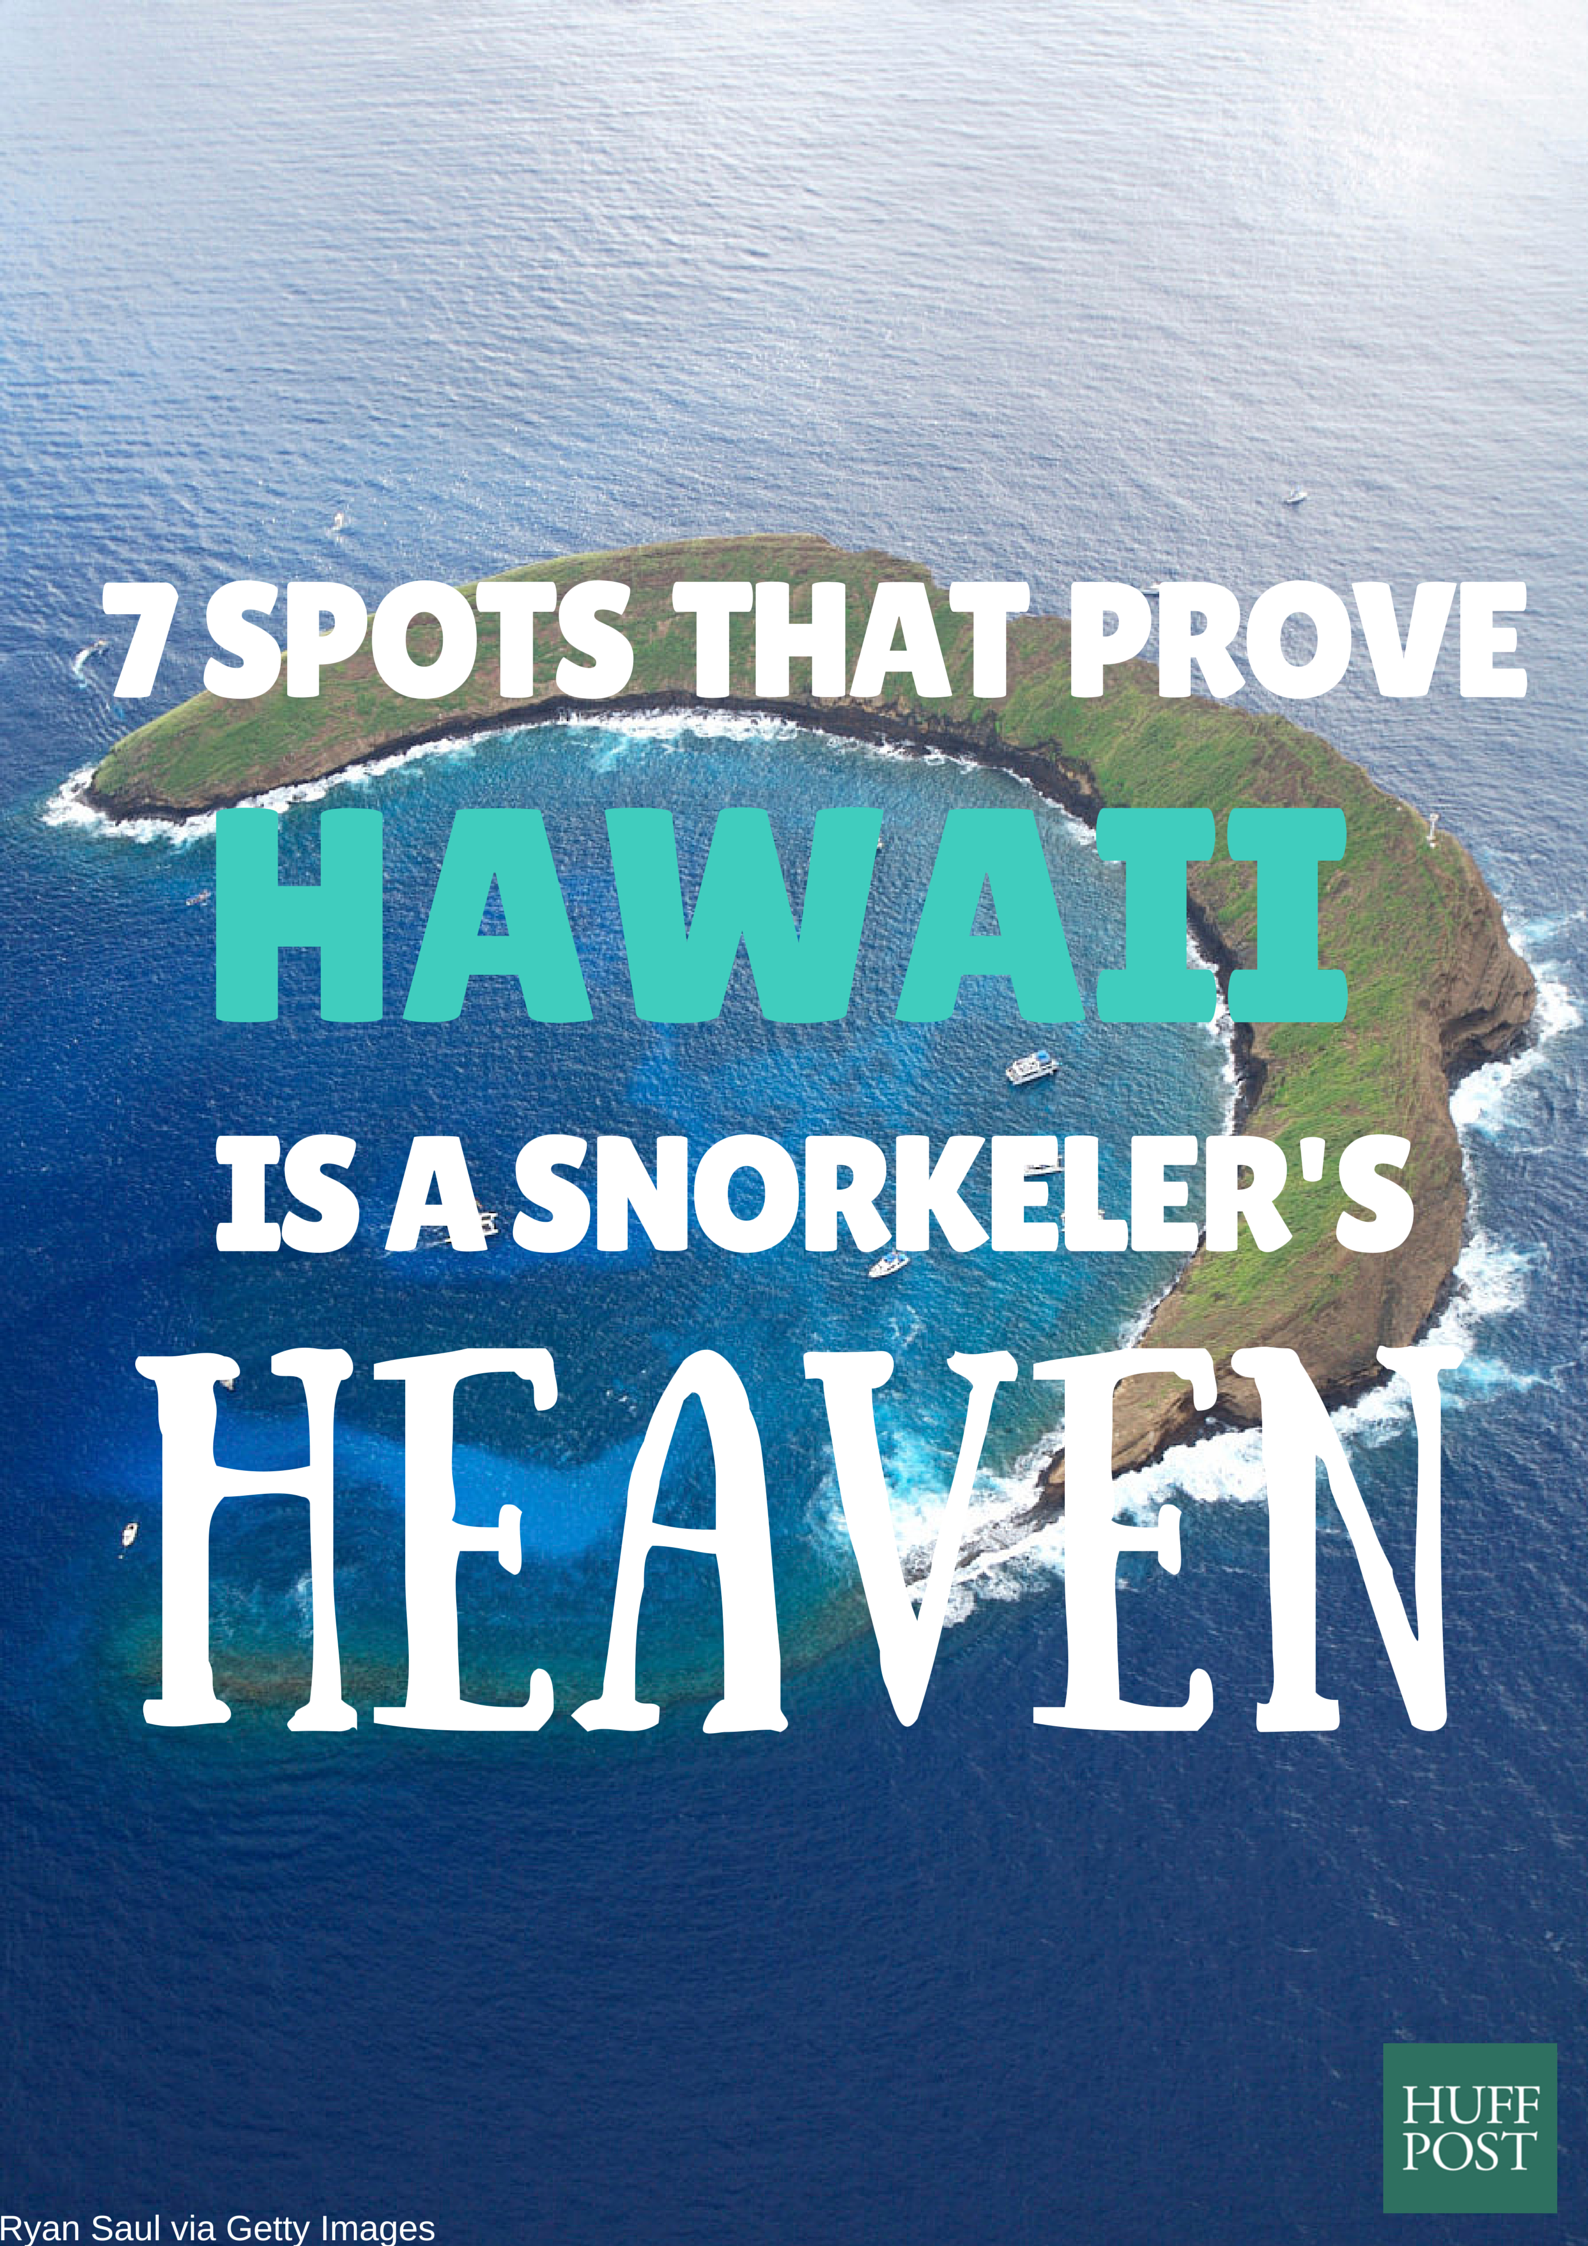 7 Spots That Prove Hawaii Is A Snorkeler's Heaven